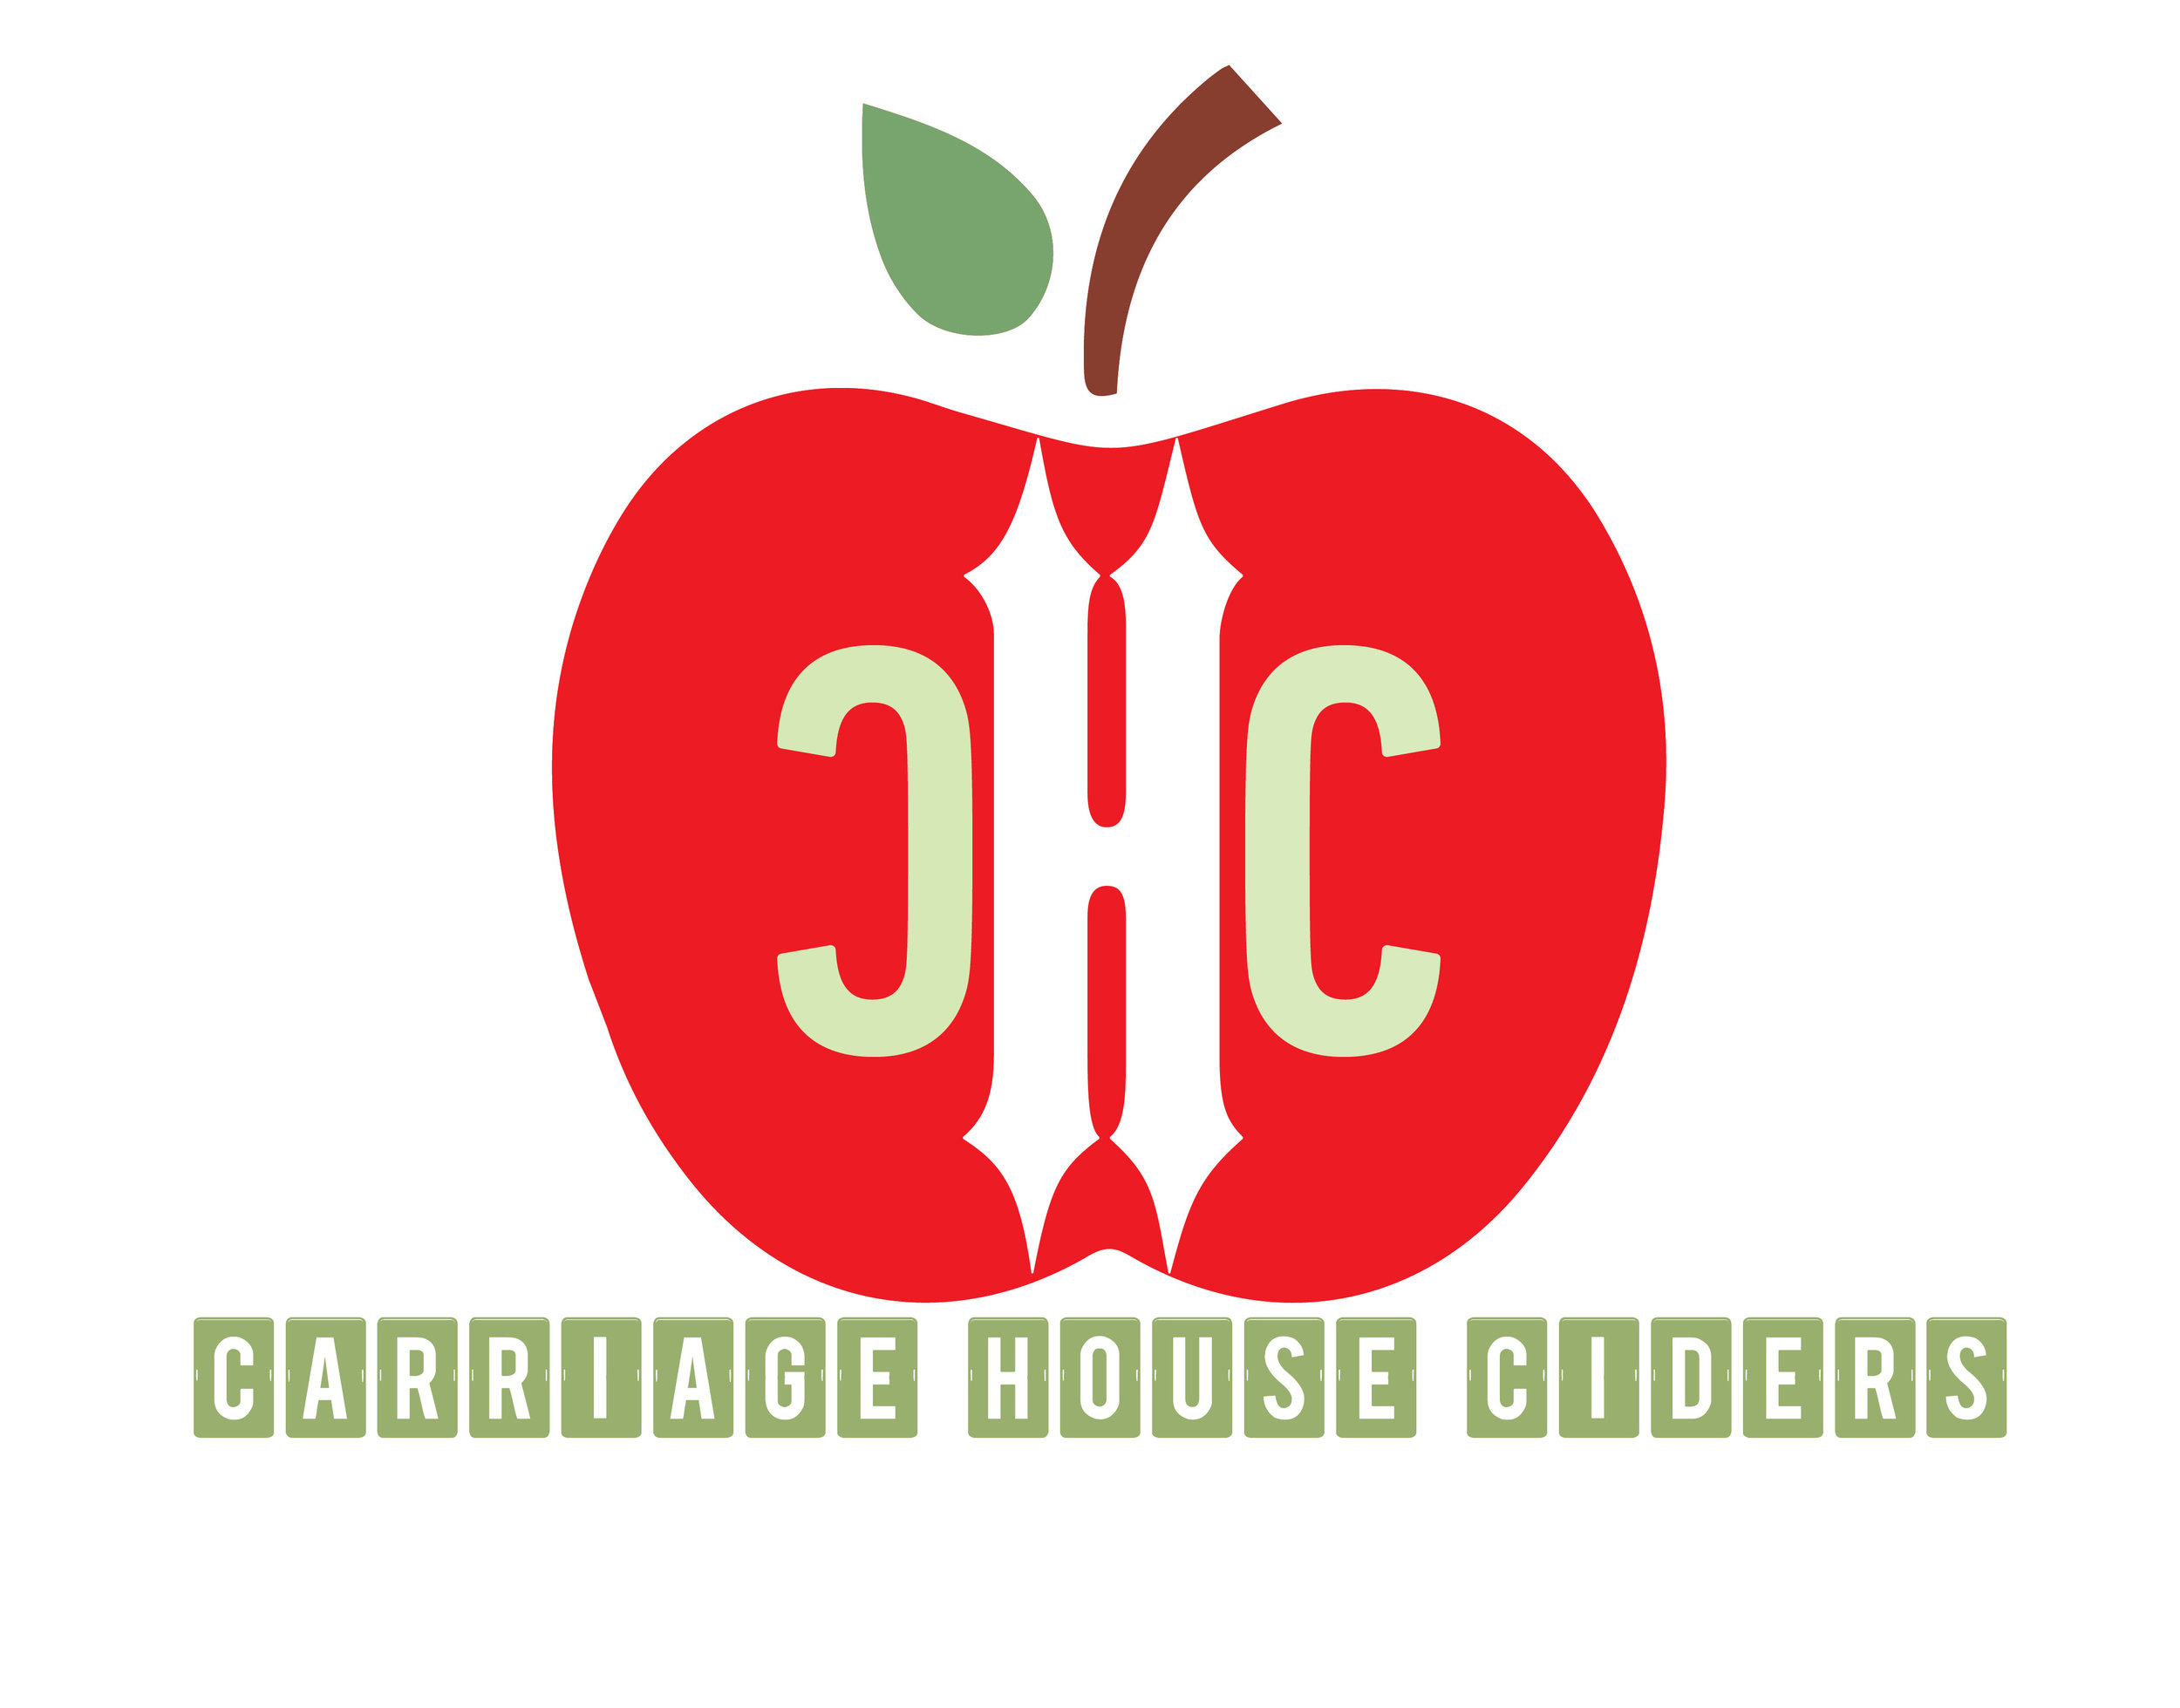 Carriage House Cider-labels-logos.jpg